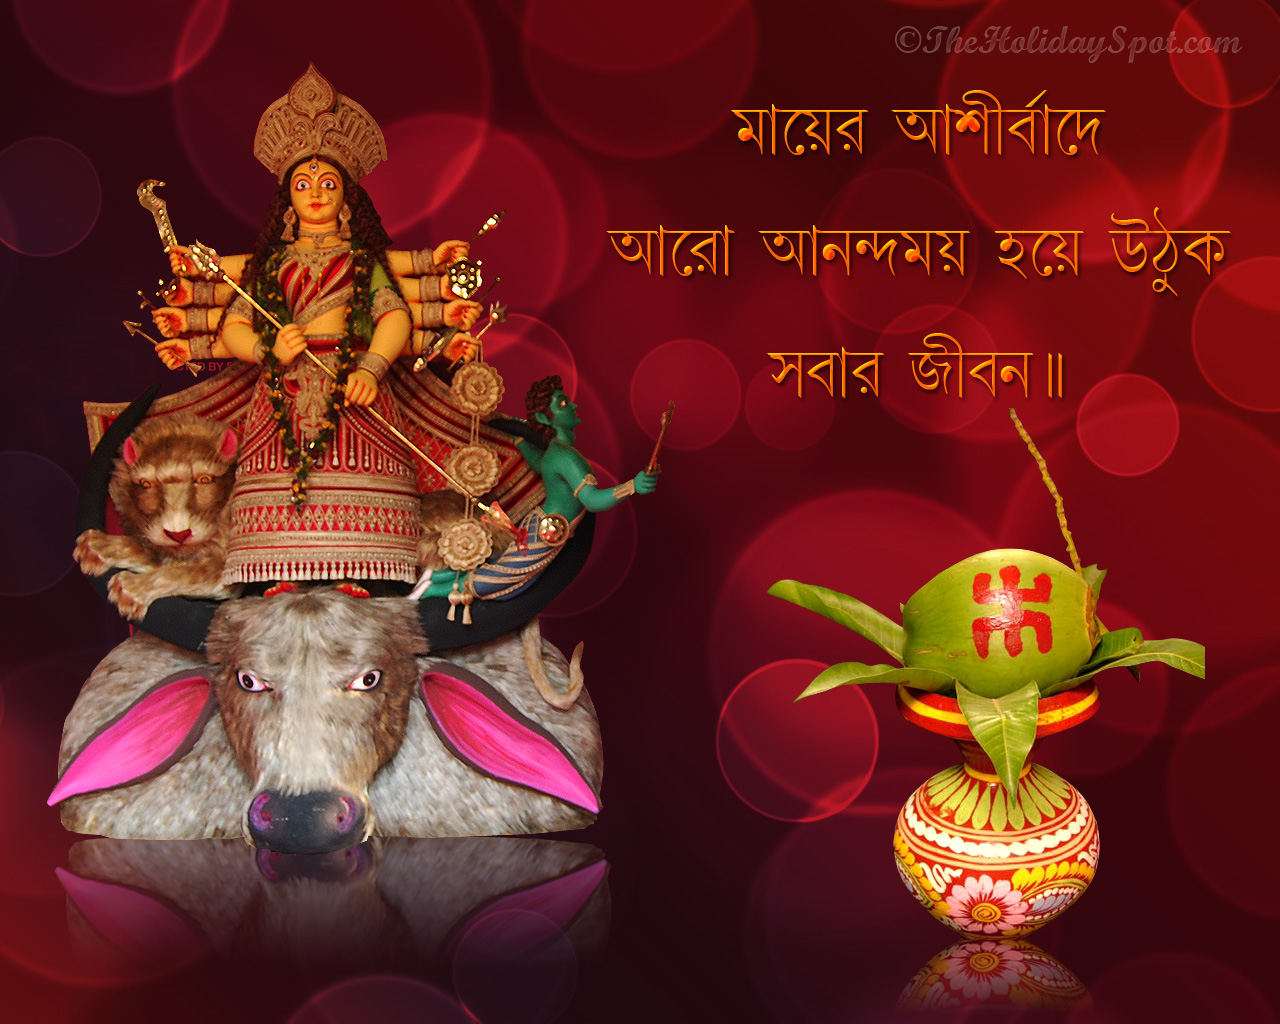 Wallpapers for Durga puja, its free, download now!